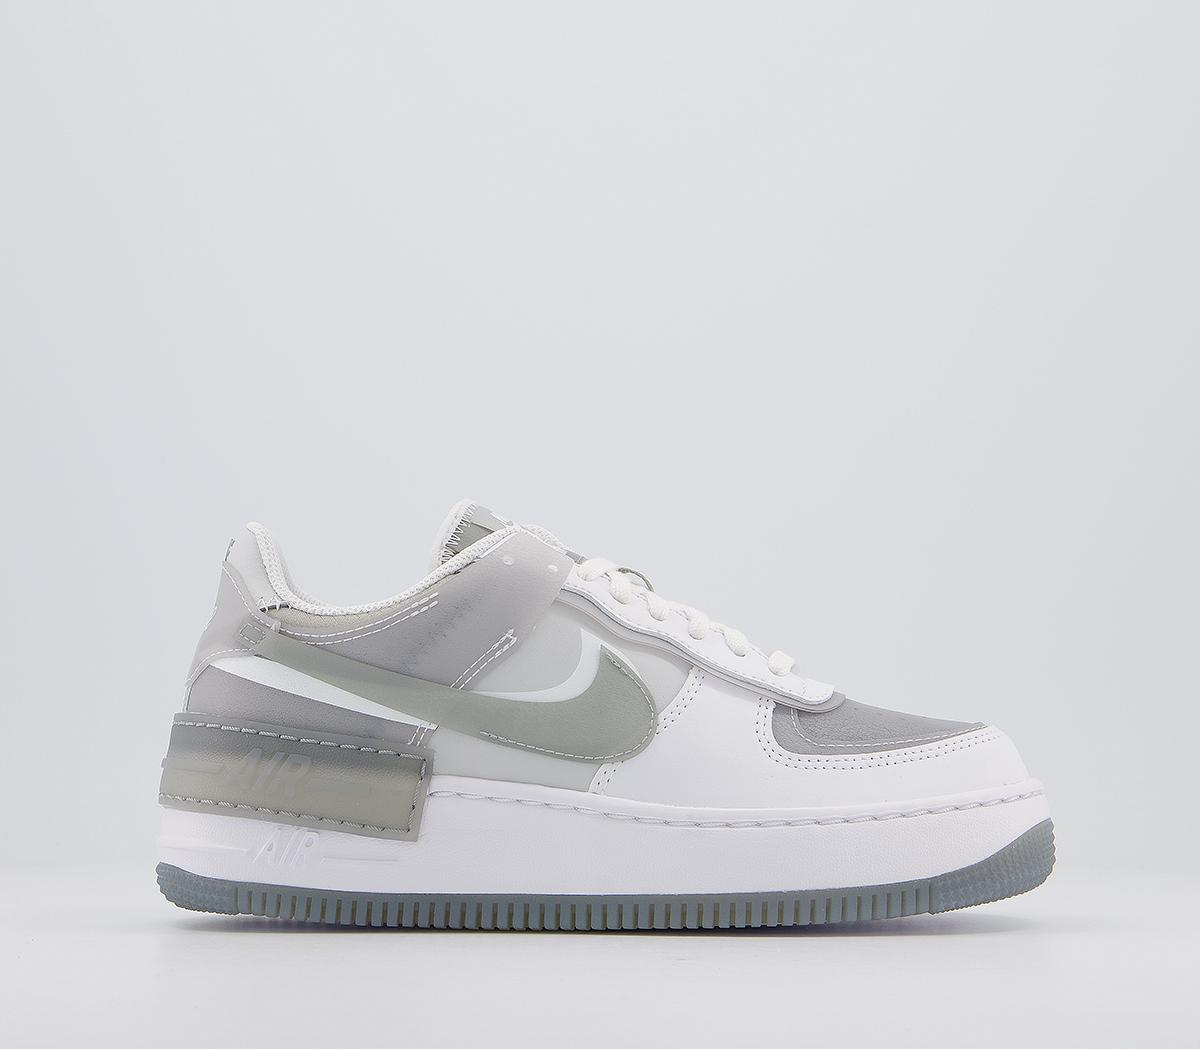 Nike Air Force 1 Shadow Trainers White Particle Grey Grey Fog Hers Trainers Sporting some of the most wanted trainers in the game, browse air max 90s and air force 1s, as well as cortez and joyride styles. air force 1 shadow trainers